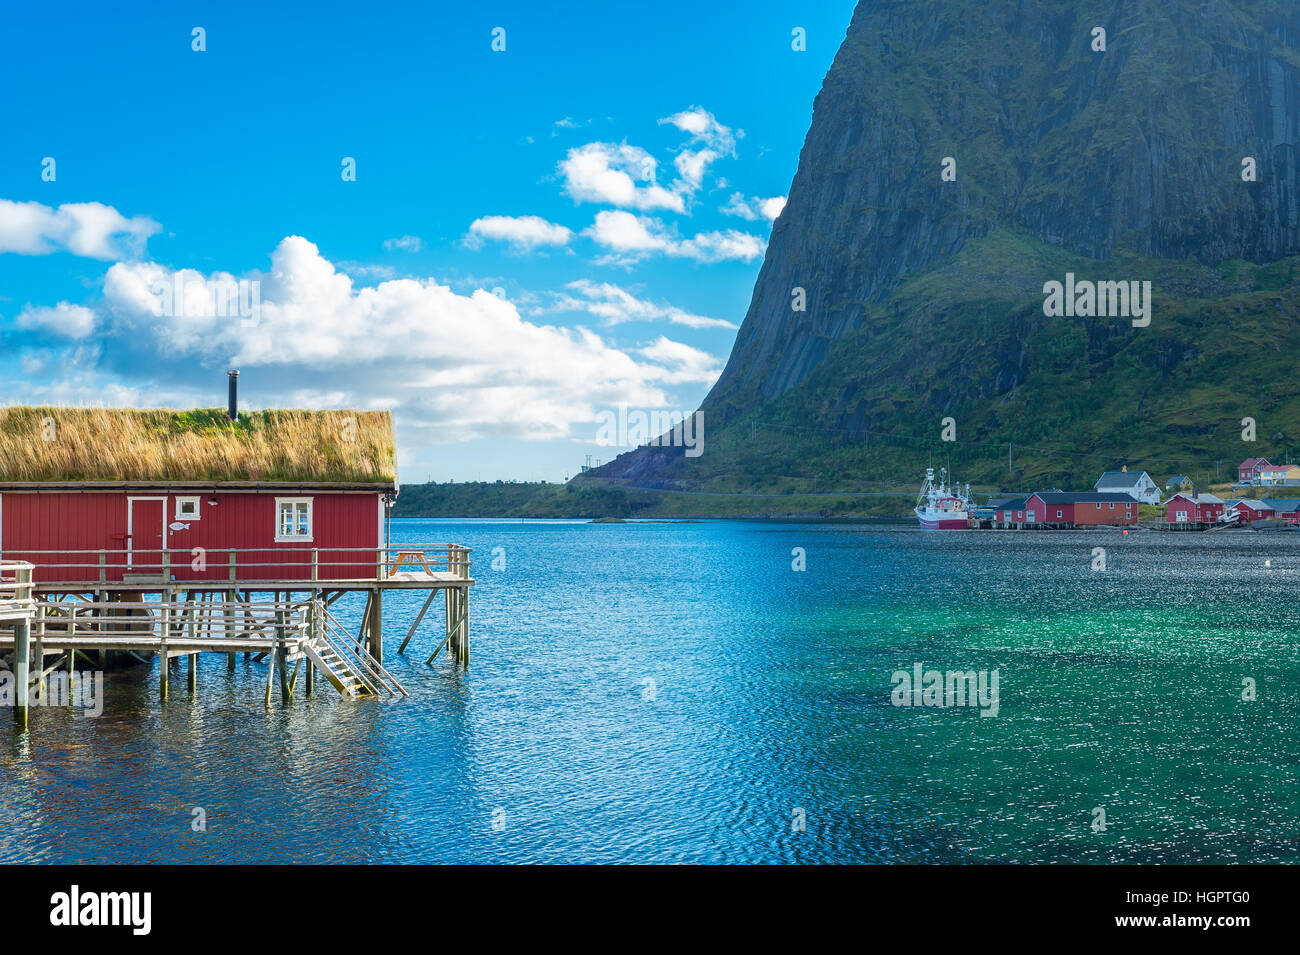 Nusfjord Fishing Village a traditional fishing village with the typical houses on stilts built partly on rocks, - Stock Image